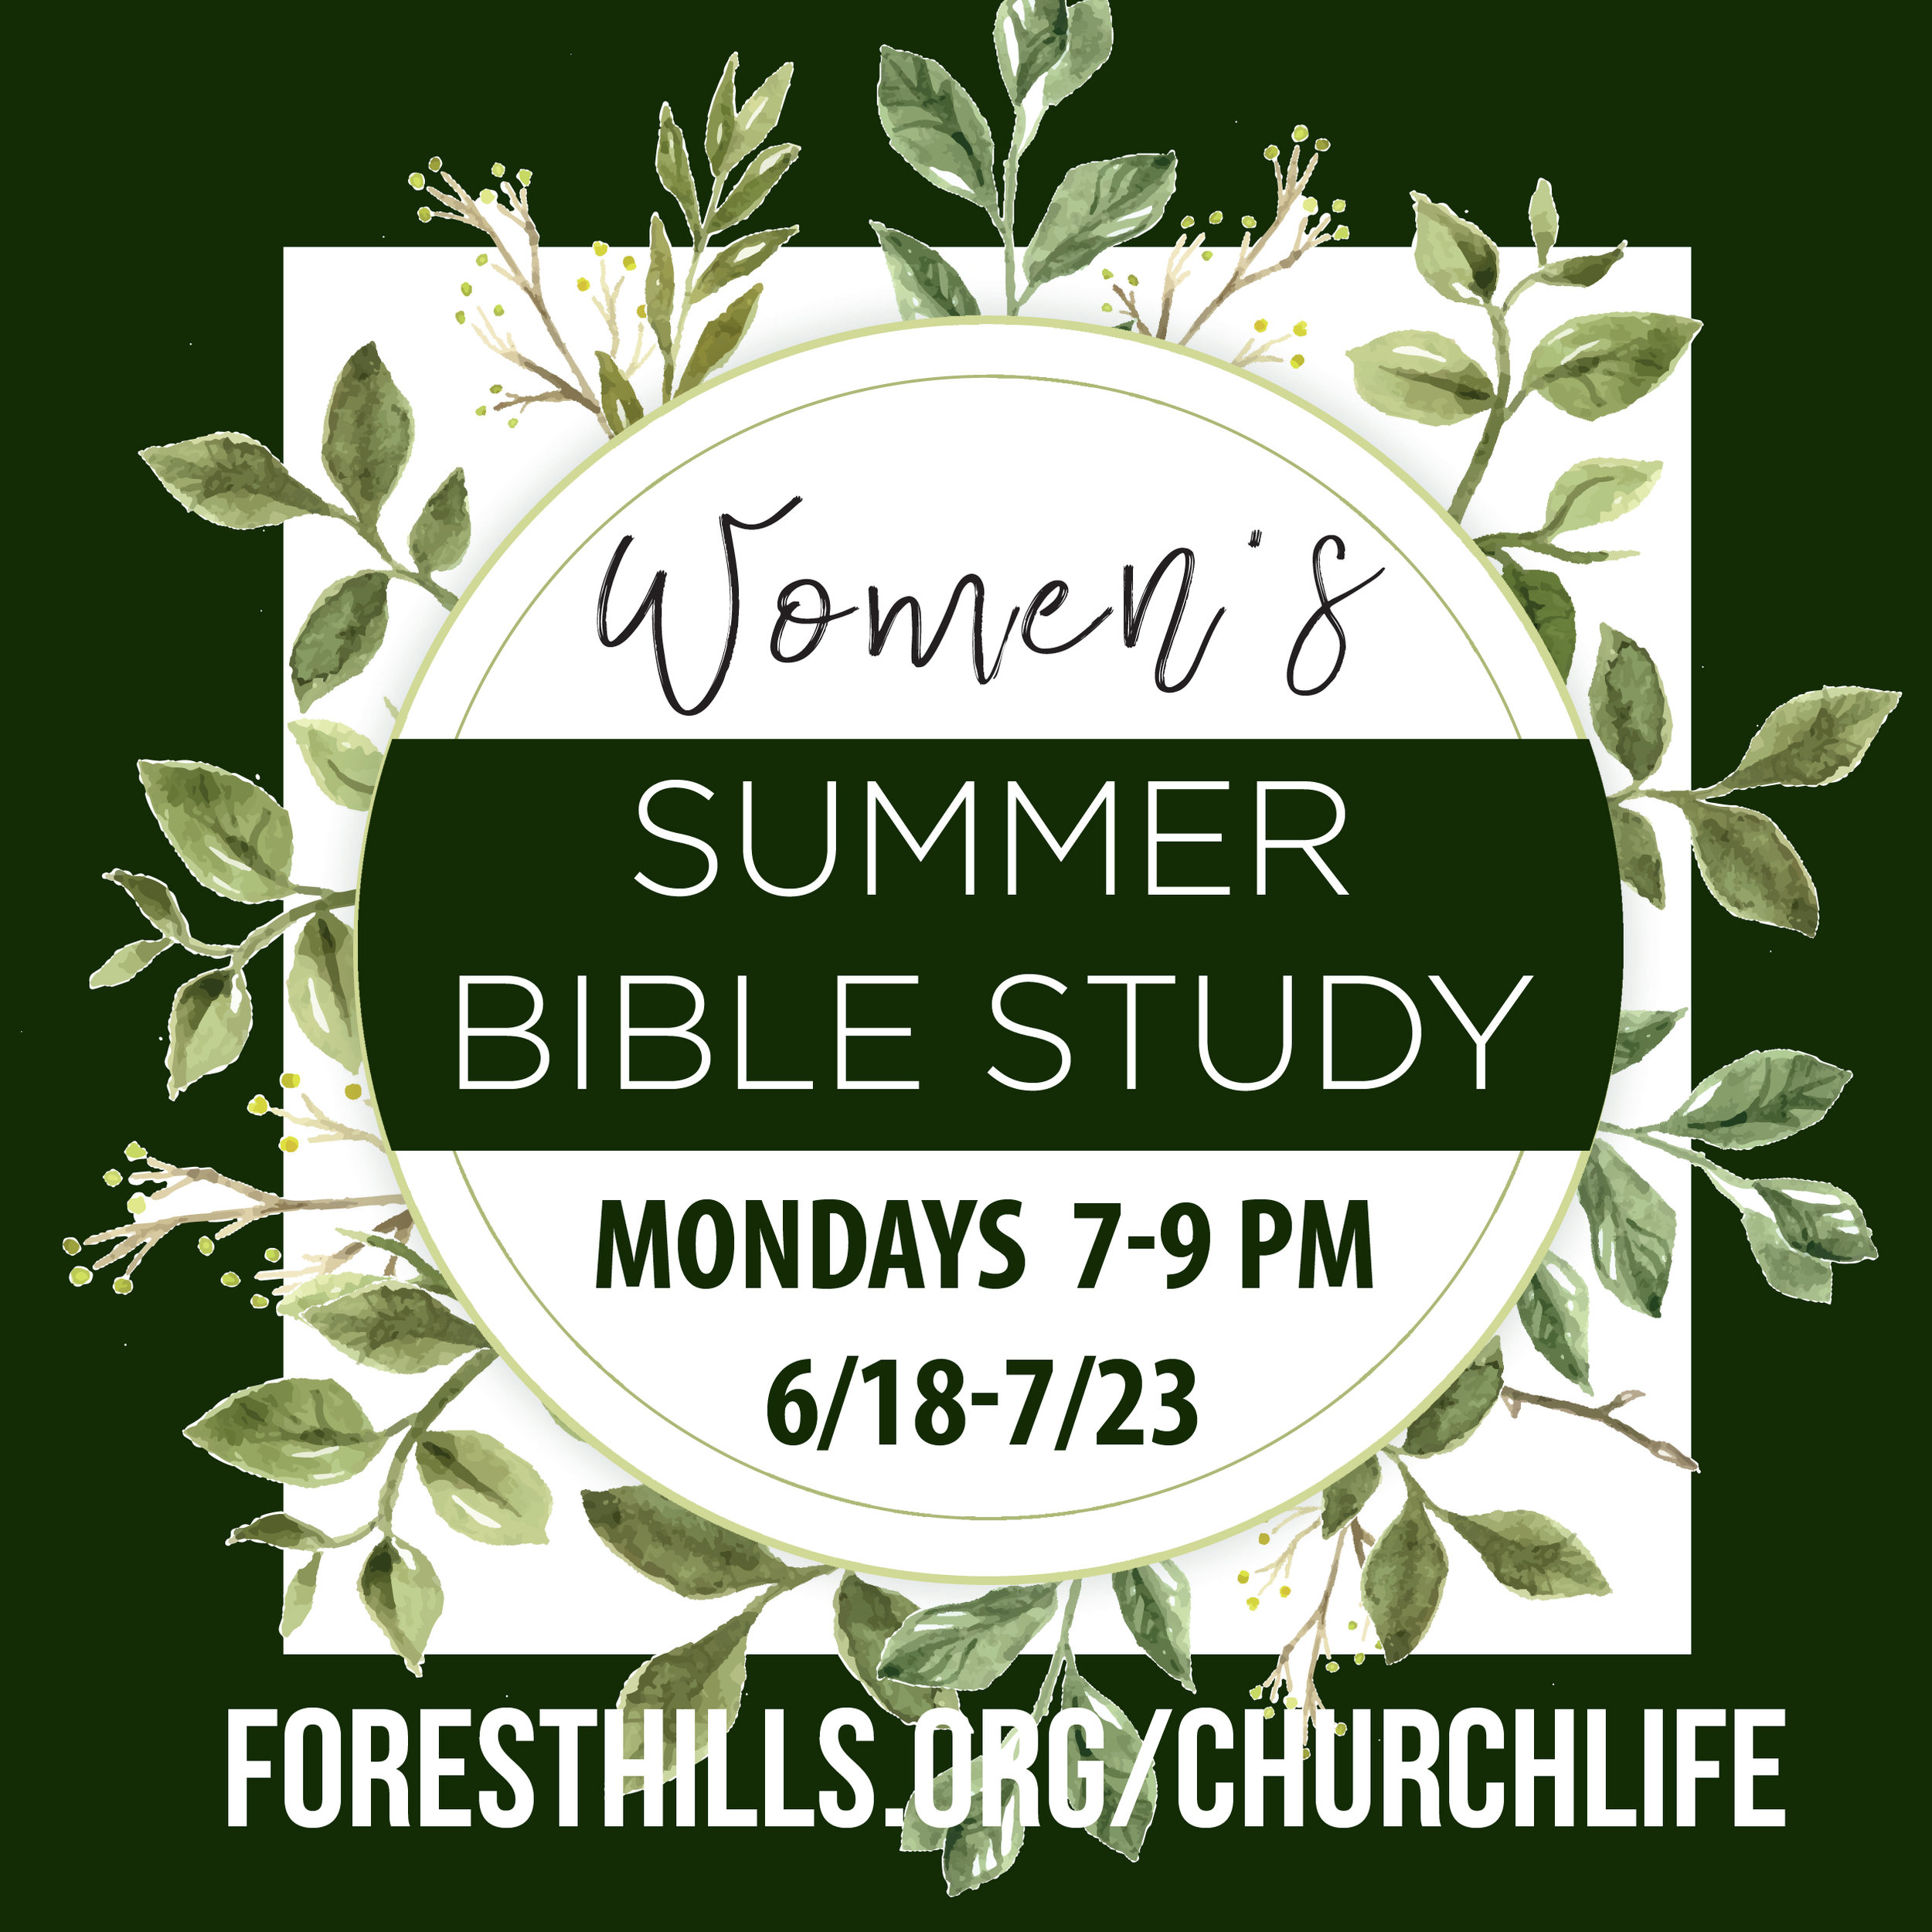 Interested in joining with other women for Bible study, fellowship and fun? The Women's Summer Bible Study will examine the book of Colossians and be reminded that Jesus is supreme! There's no better way to be encouraged than to be in the Scriptures and growing closer to Jesus. We'll meet from 7 – 9:00 pm on Mondays, from 6/18-7/23 (no meeting 7/4). Frances Overby is hosting and facilitating the study in her North Raleigh home. If interested visit  foresthills.org/churchlife.